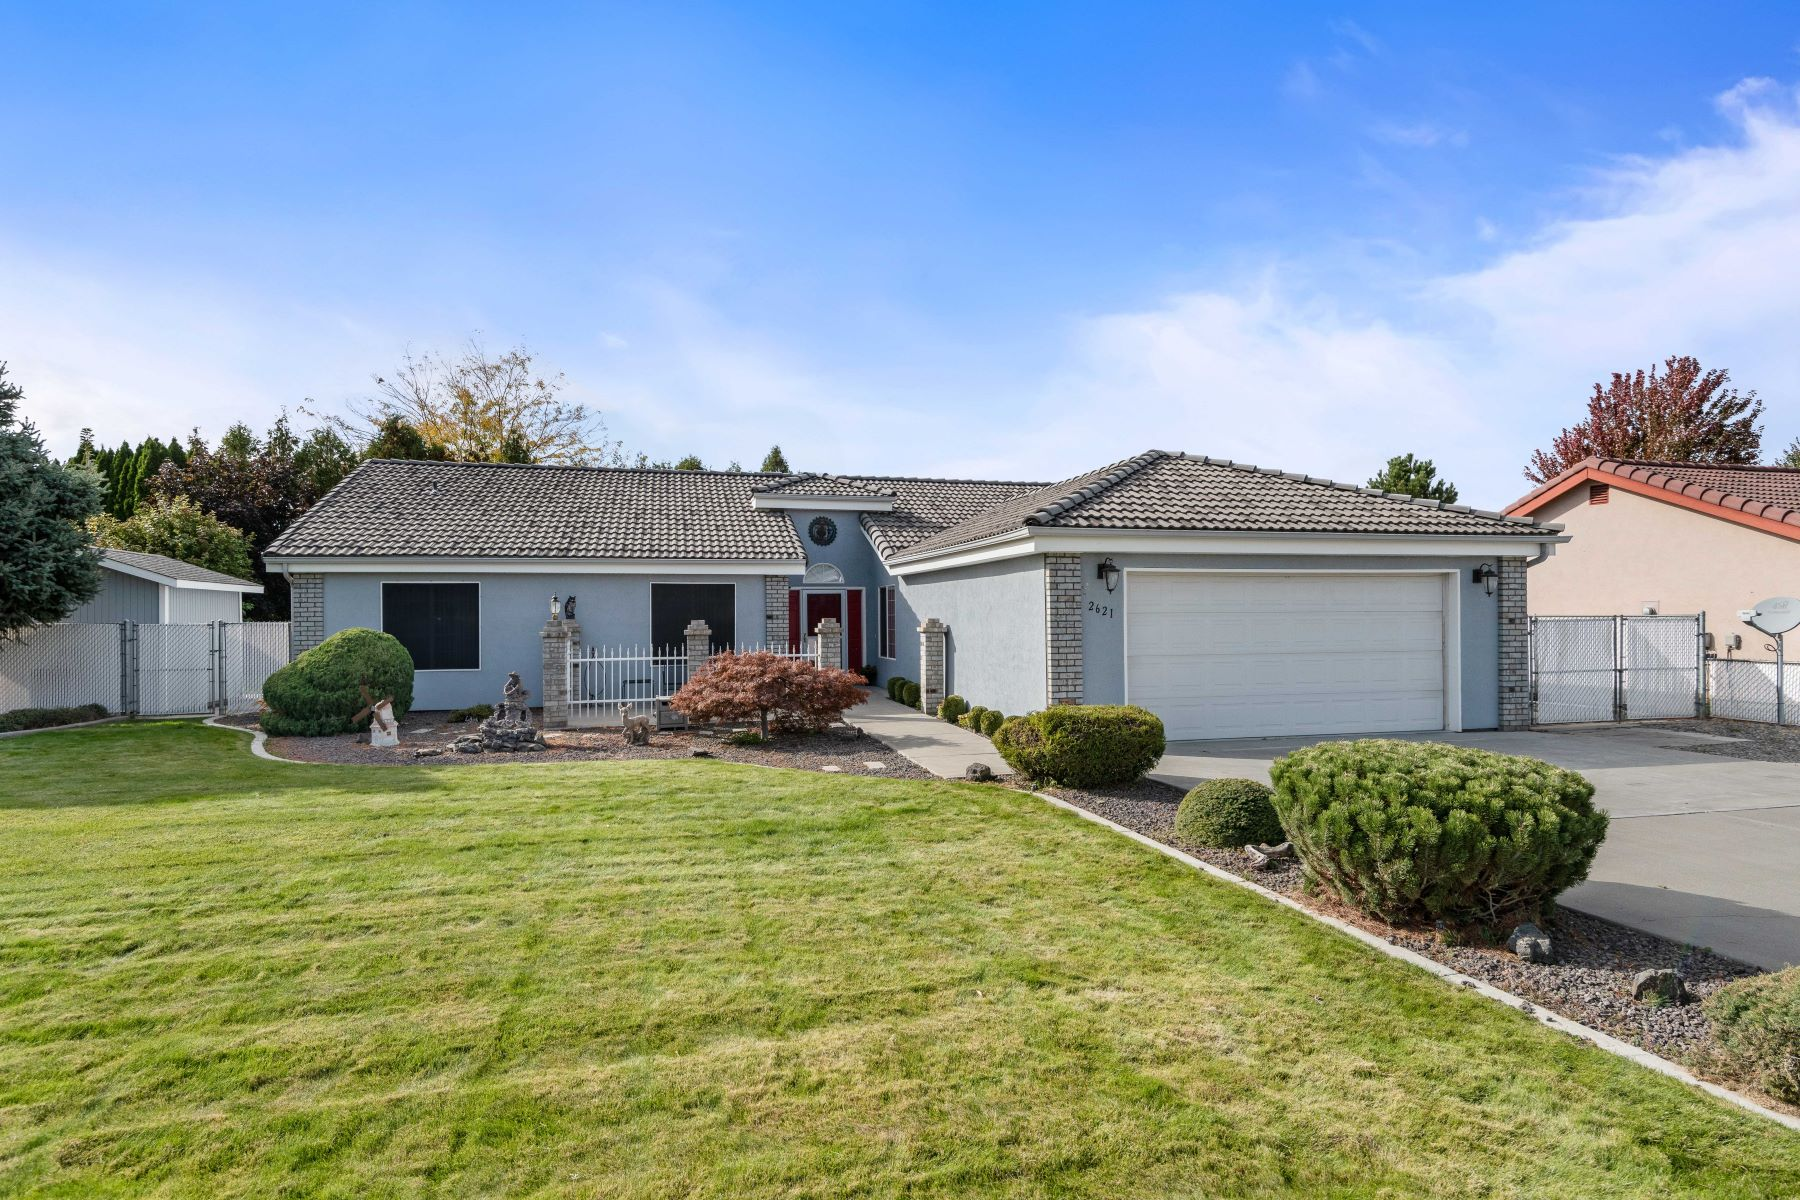 Single Family Homes for Sale at Immaculate West Richland Rambler 2621 Royal Palm Avenue West Richland, Washington 99353 United States